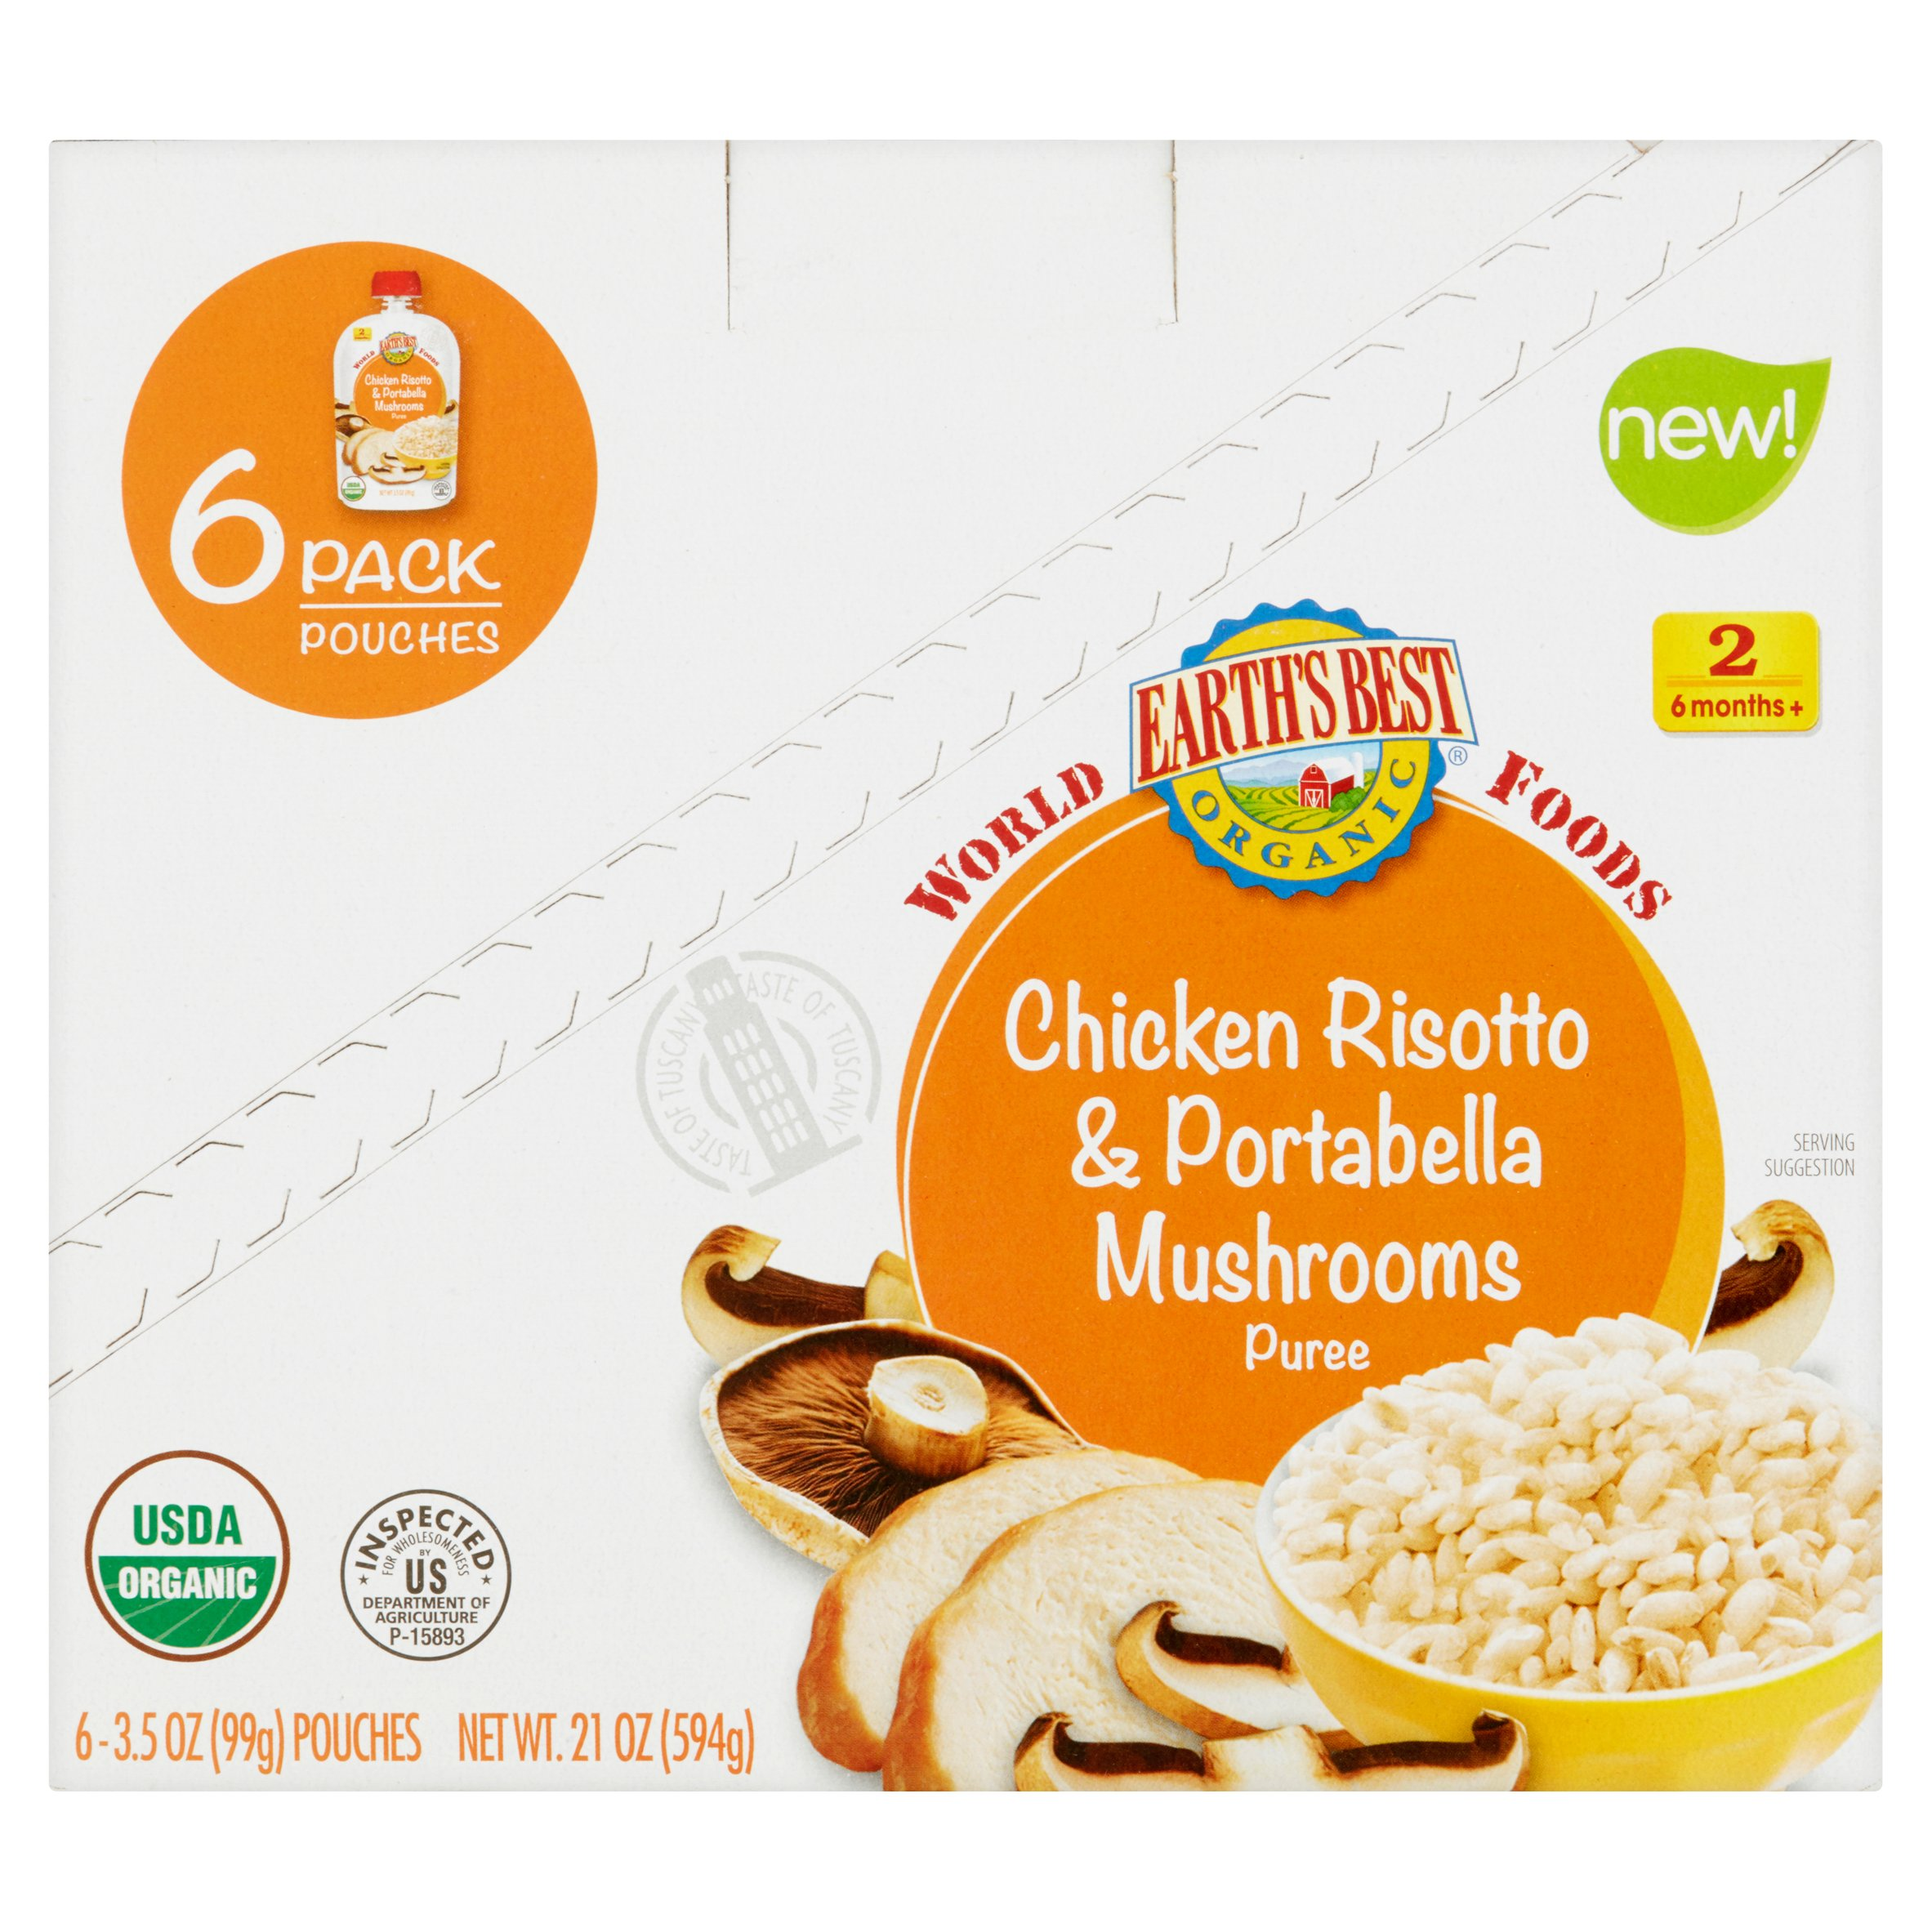 Earth's Best Organic Baby Food Chicken Risotto & Portabella Mushrooms Puree 2 6 Months+, 3.5 oz, 6 pack